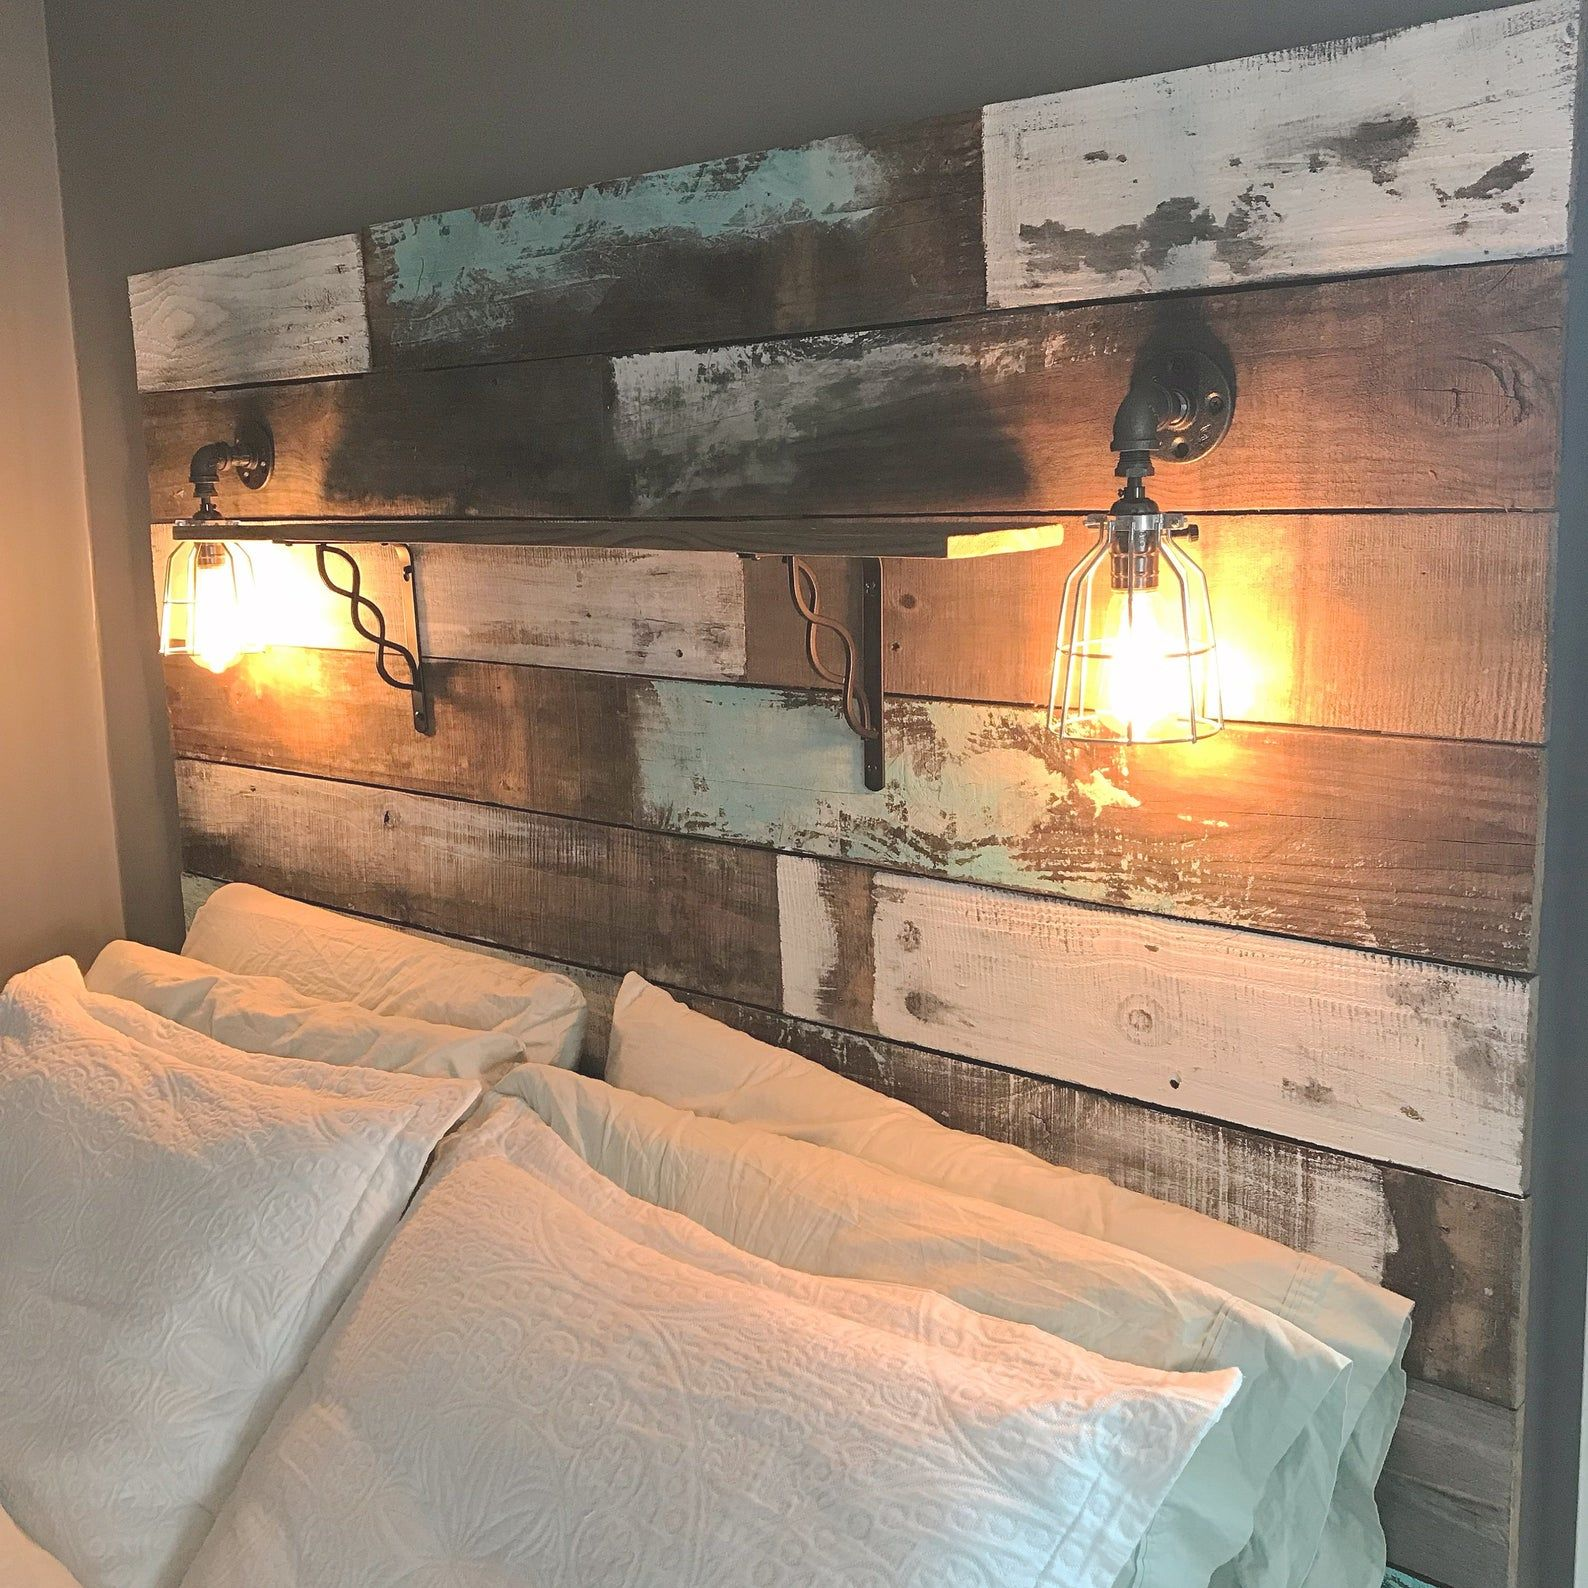 85 Charming Rustic Bedroom Ideas And Designs 4 In 2020: Farmhouse Rustic Chippy Paint Cottage Whitewashed Grey